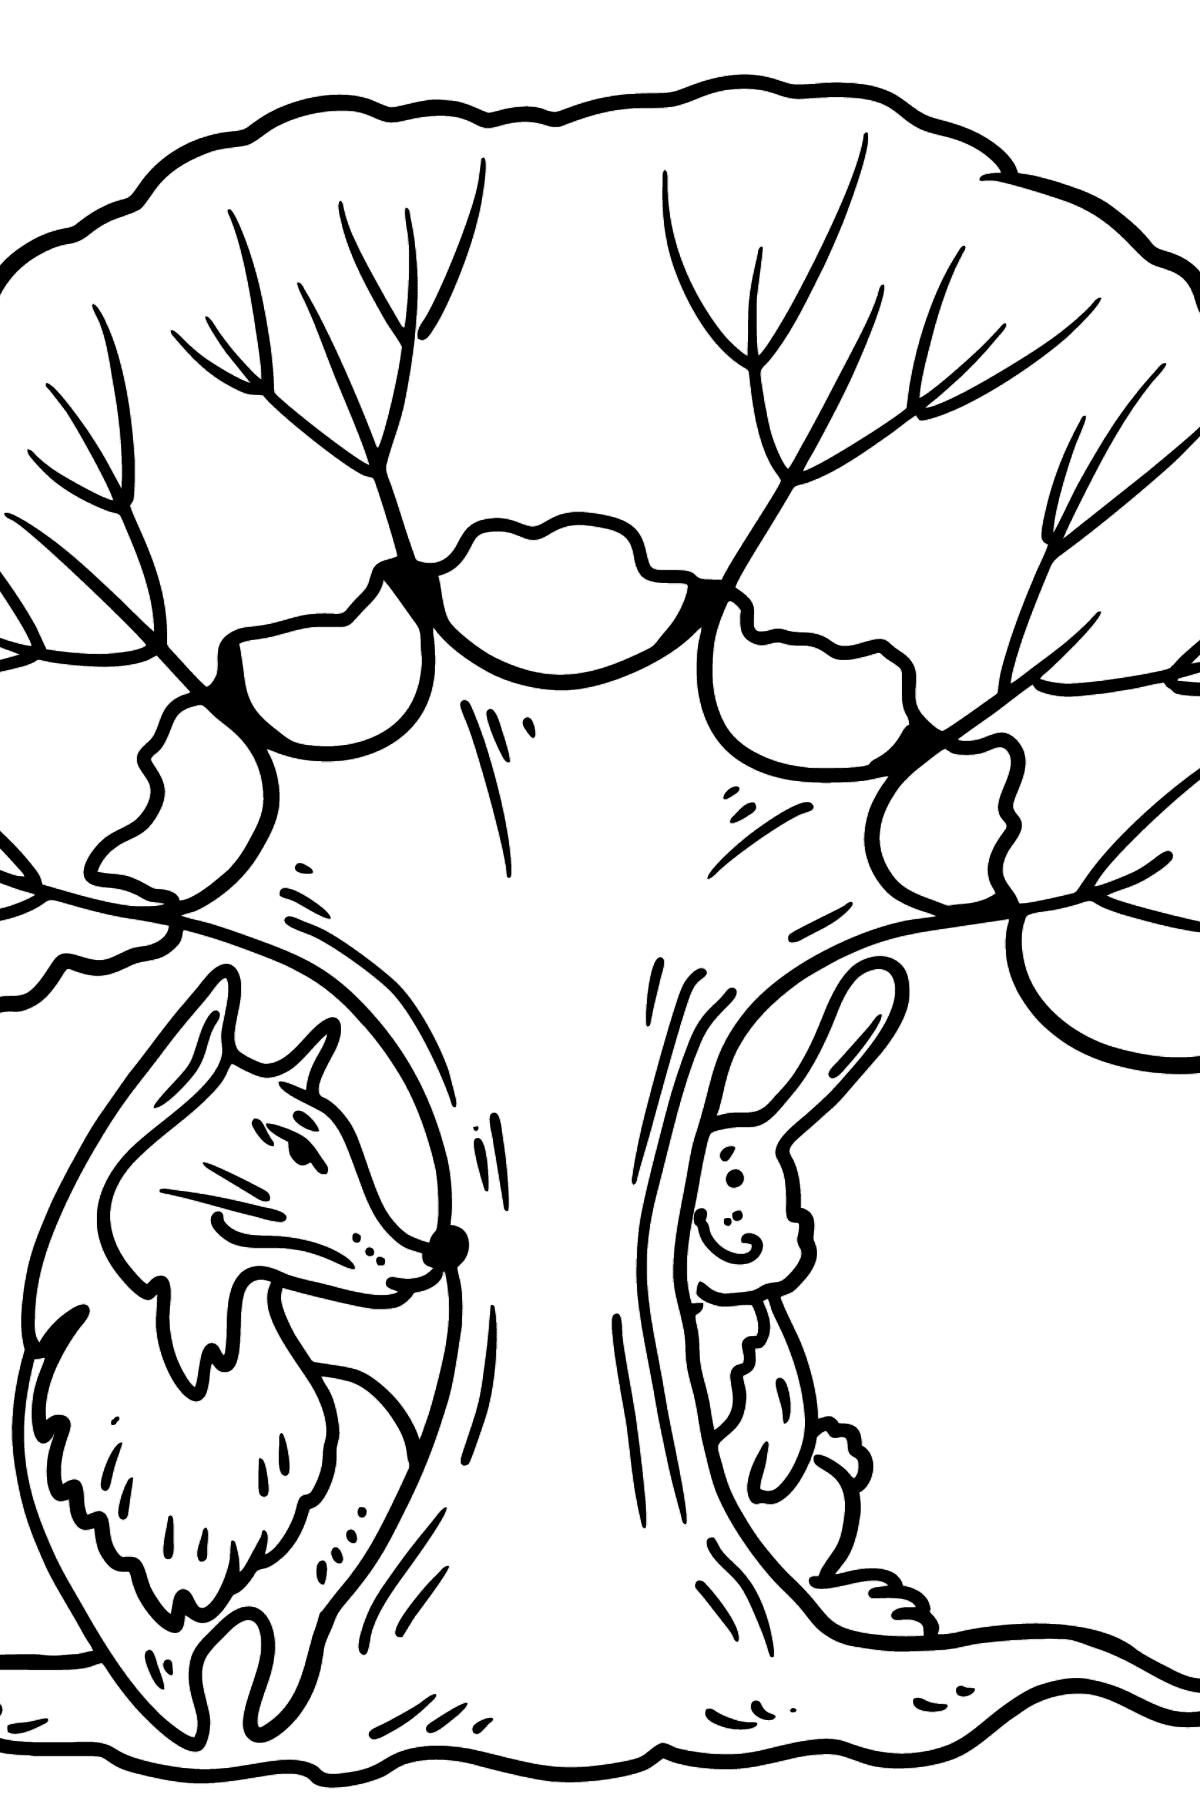 Bunny and Fox coloring page - Coloring Pages for Kids